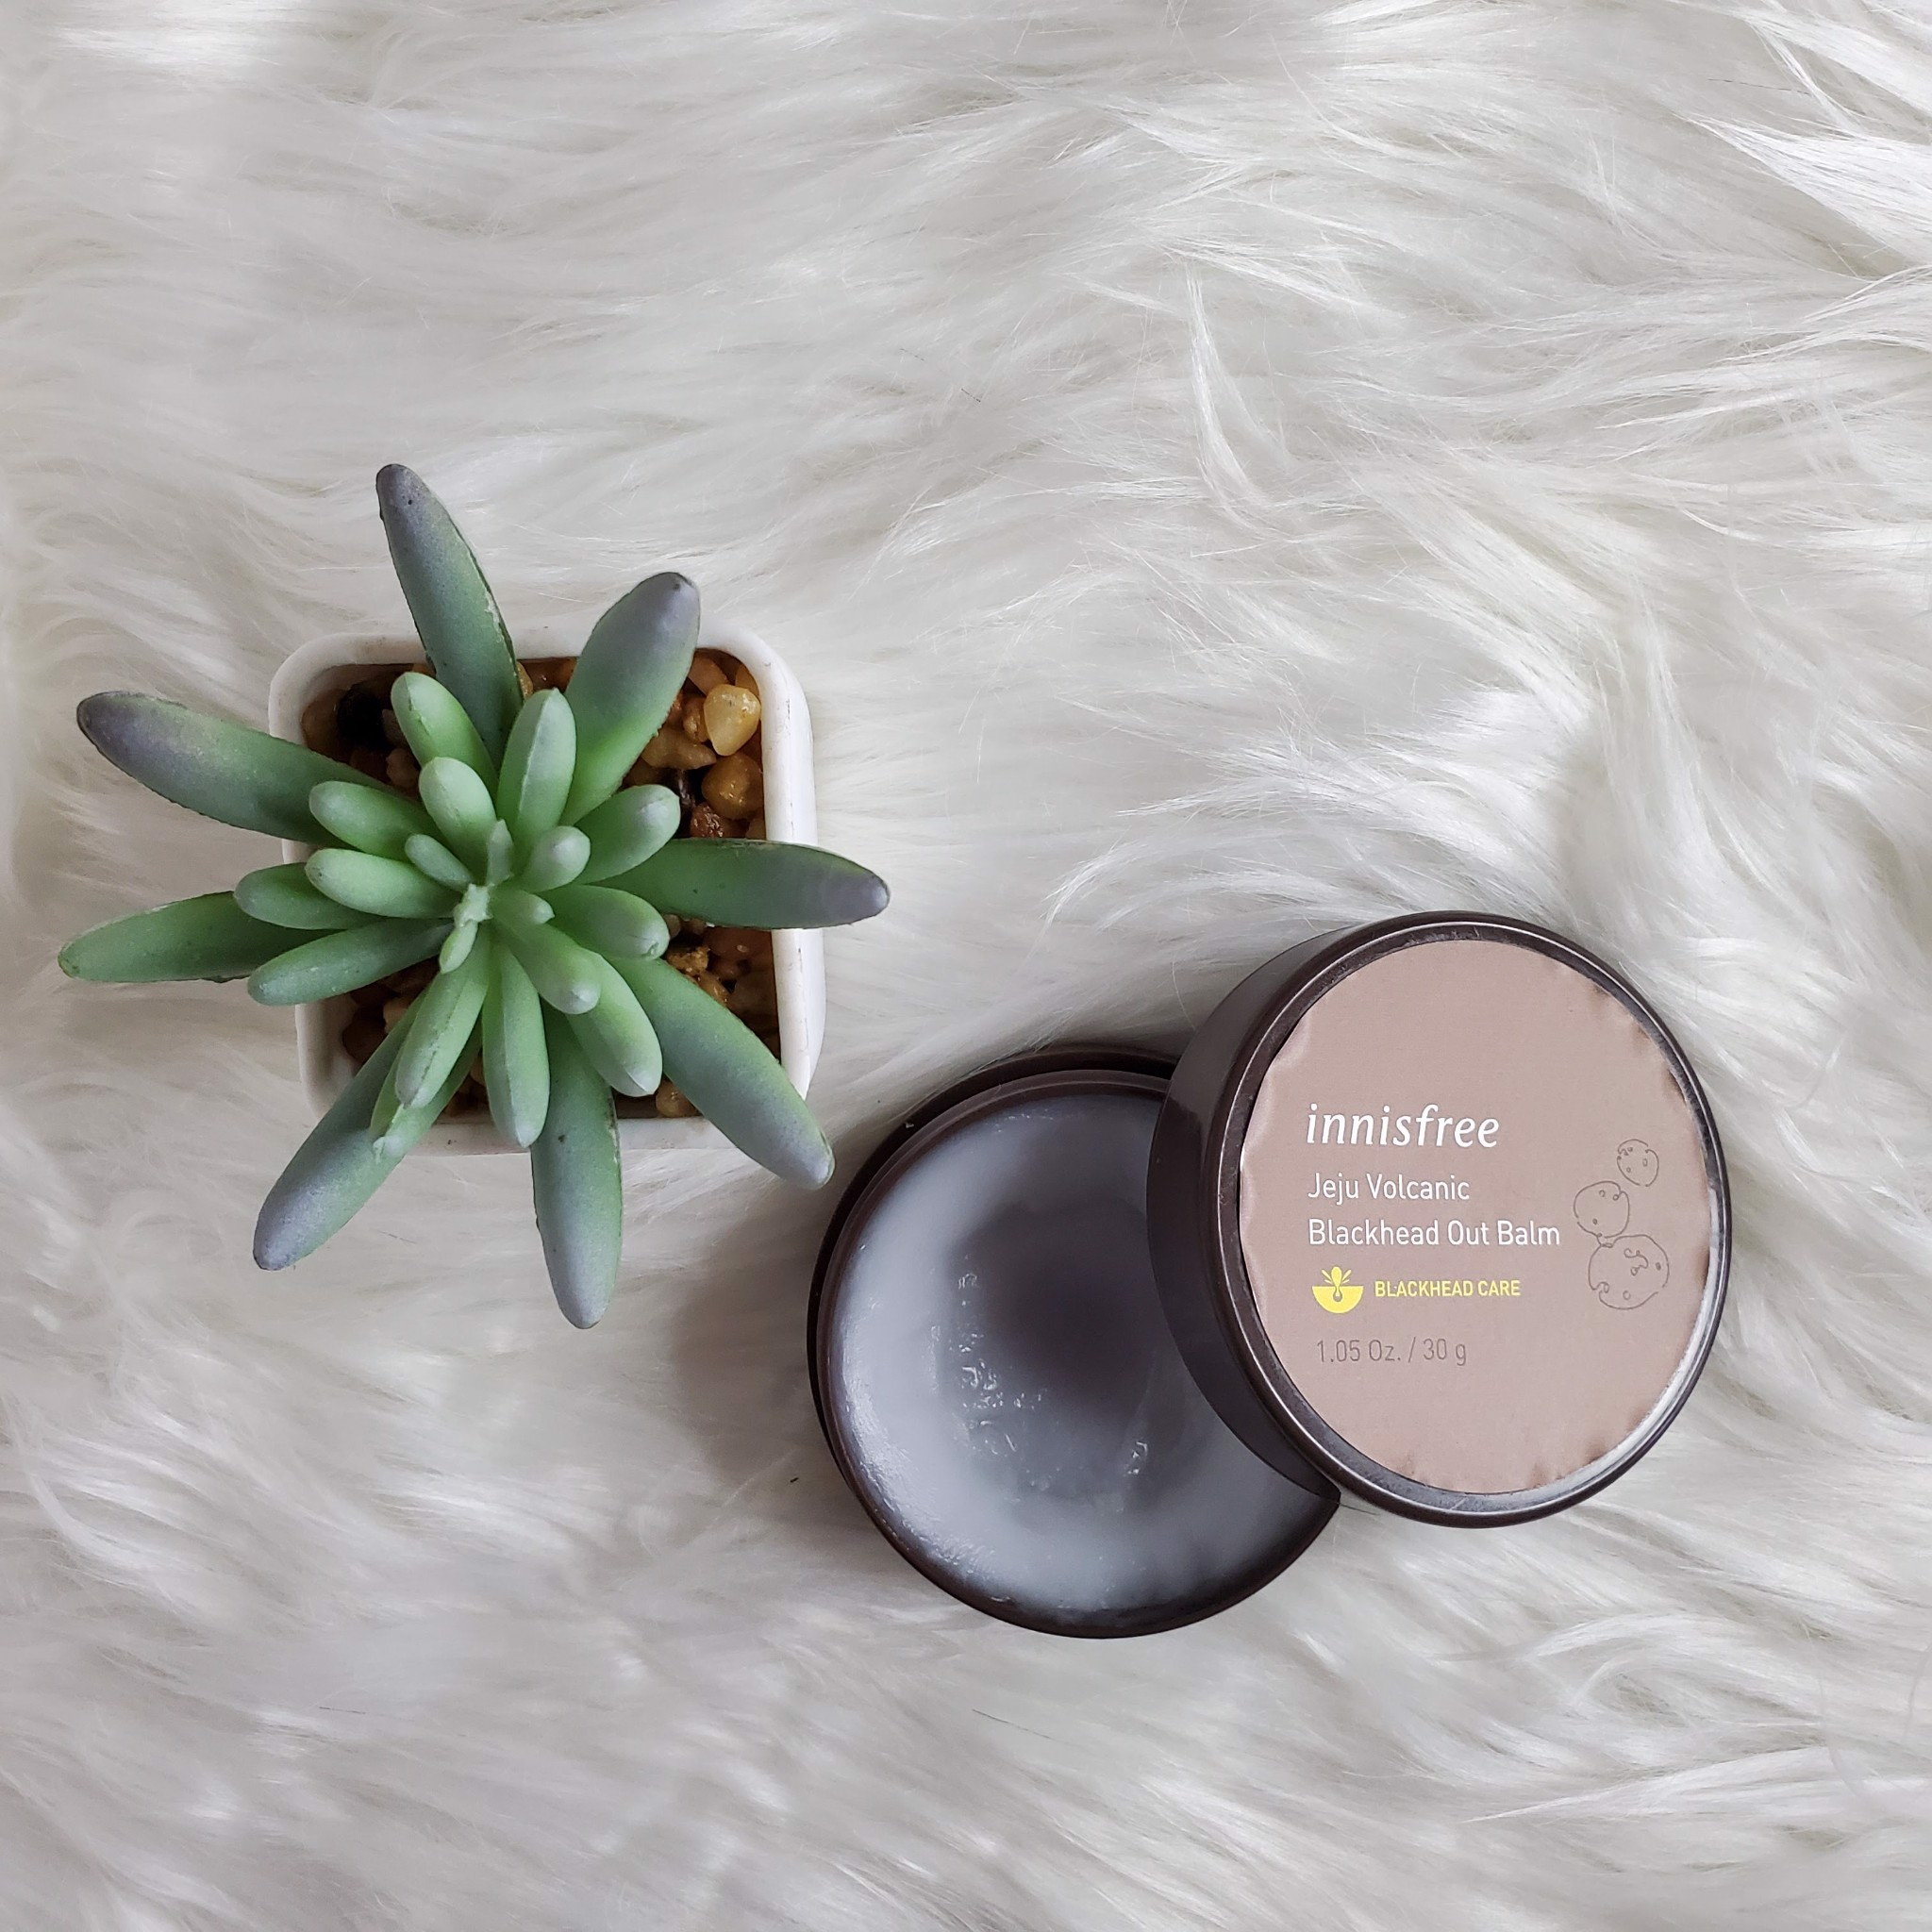 Sáp Trị Mụn Innisfree Jeju Volcanic Black Head Out Balm